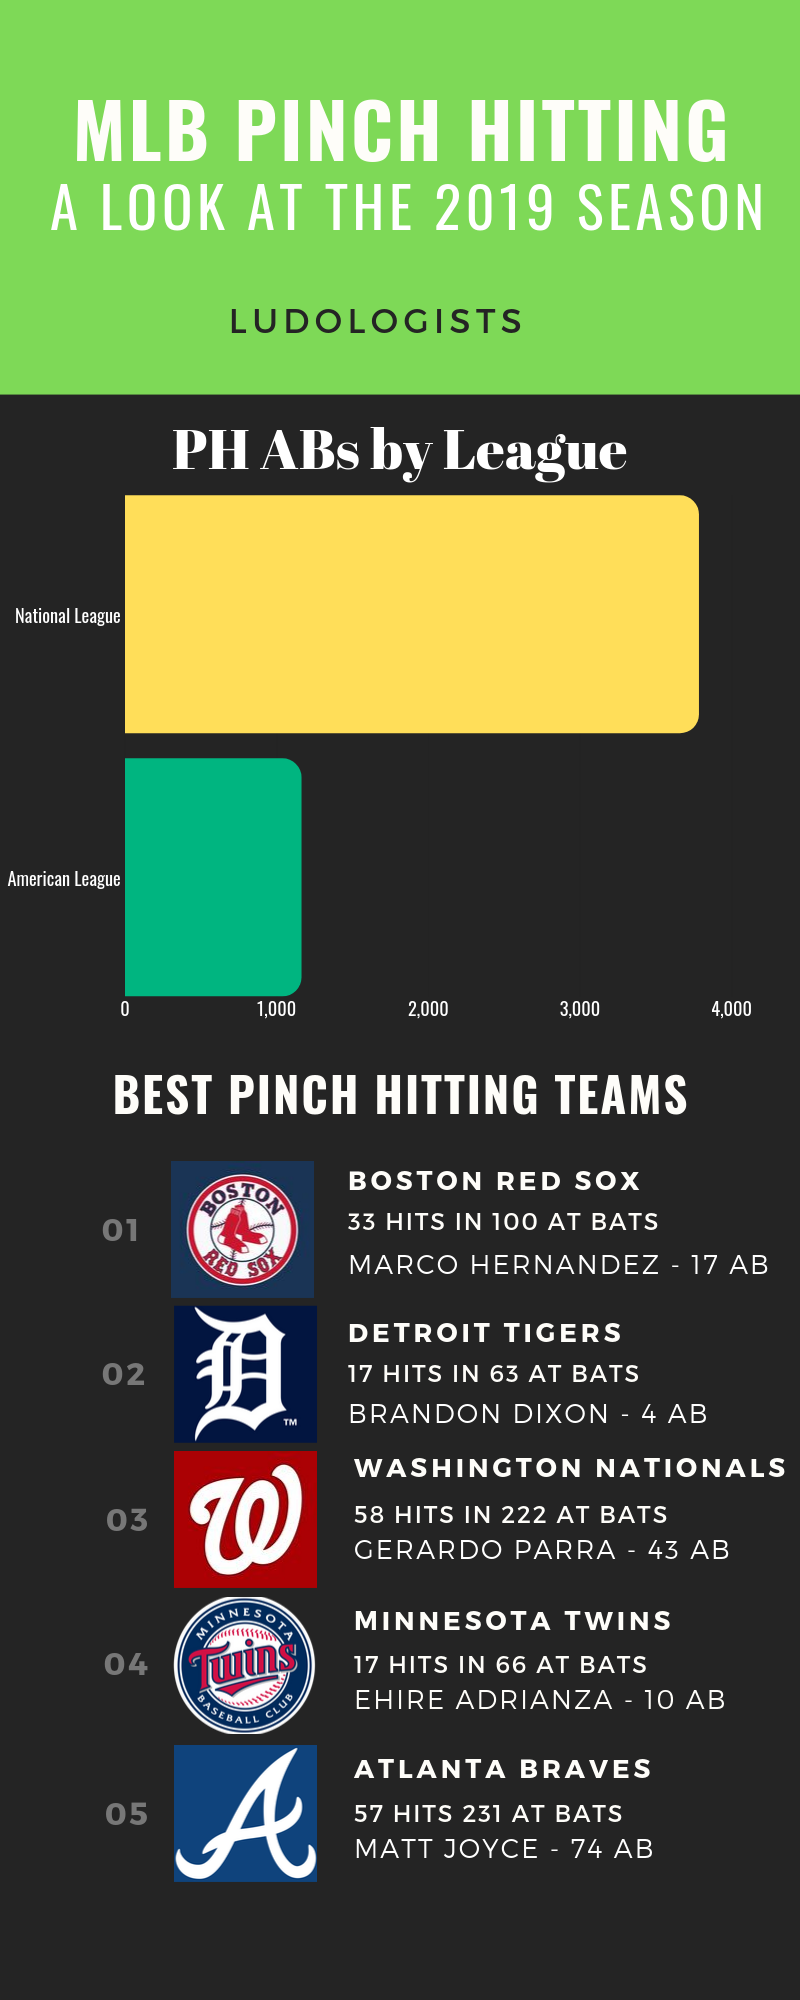 Infographic Summarizing Pinch Hitting Stats from 2019